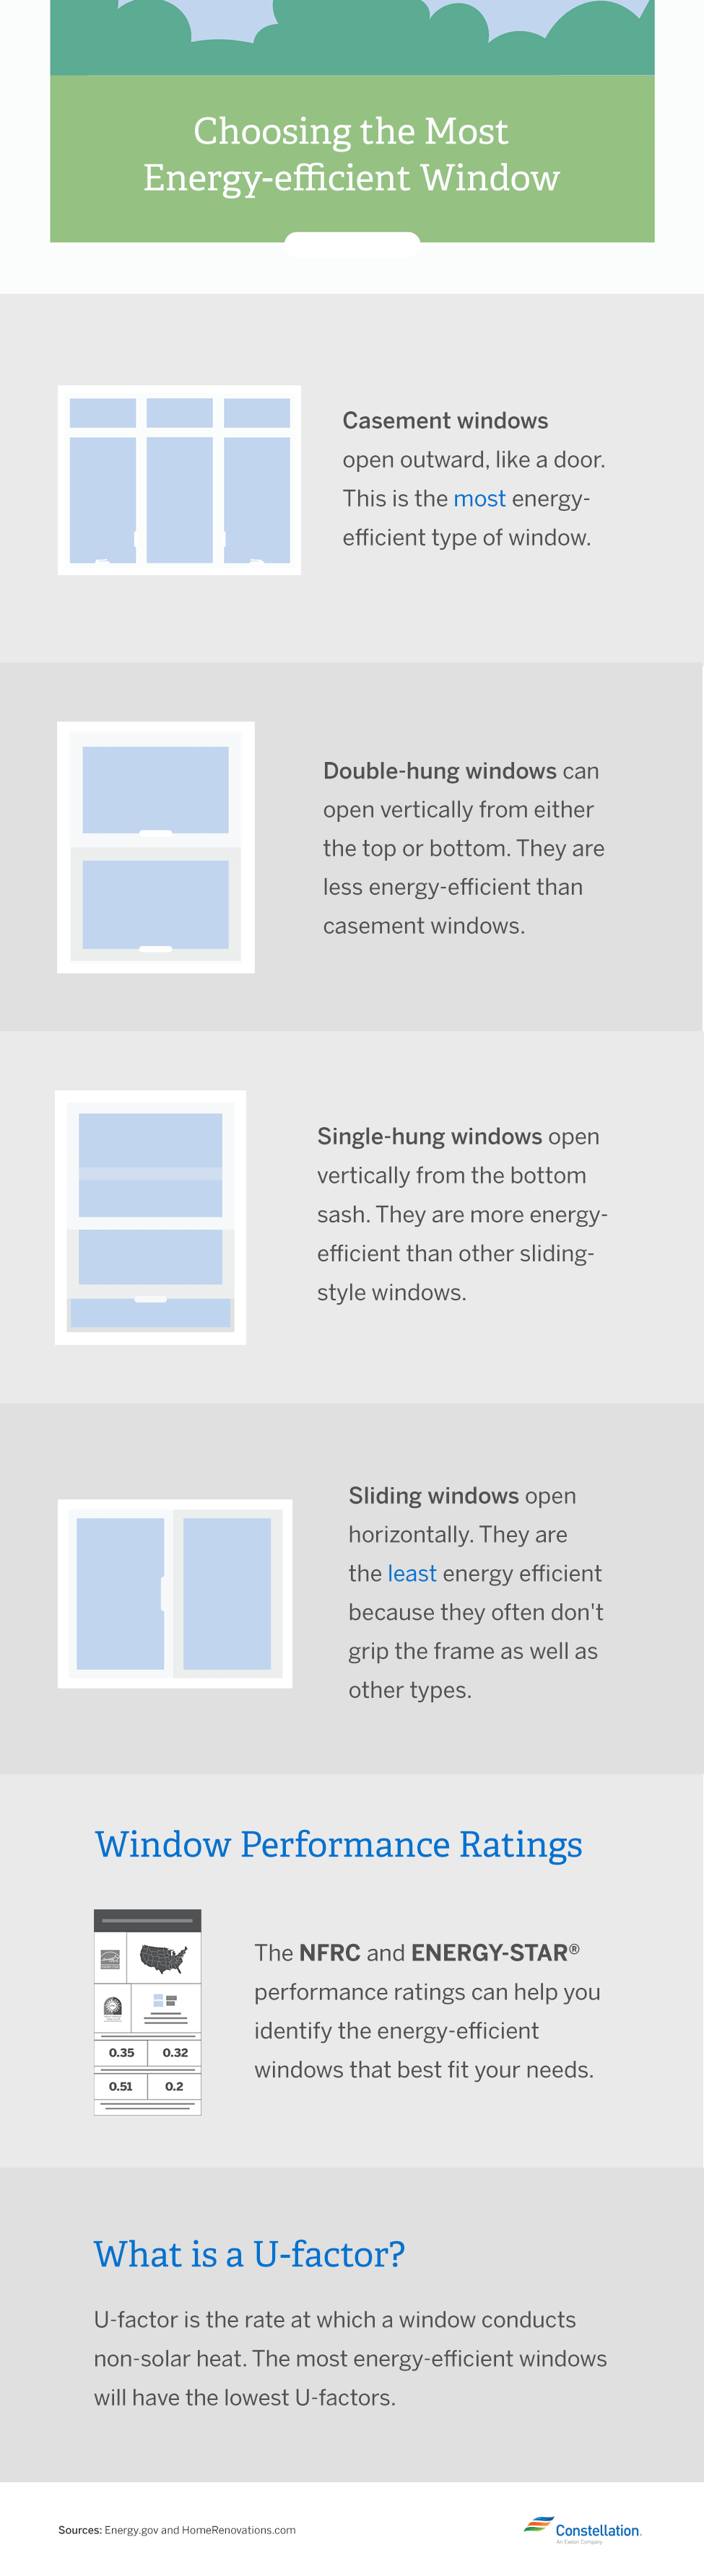 Energy efficiency series benefits of energy efficient windows for Energy windows